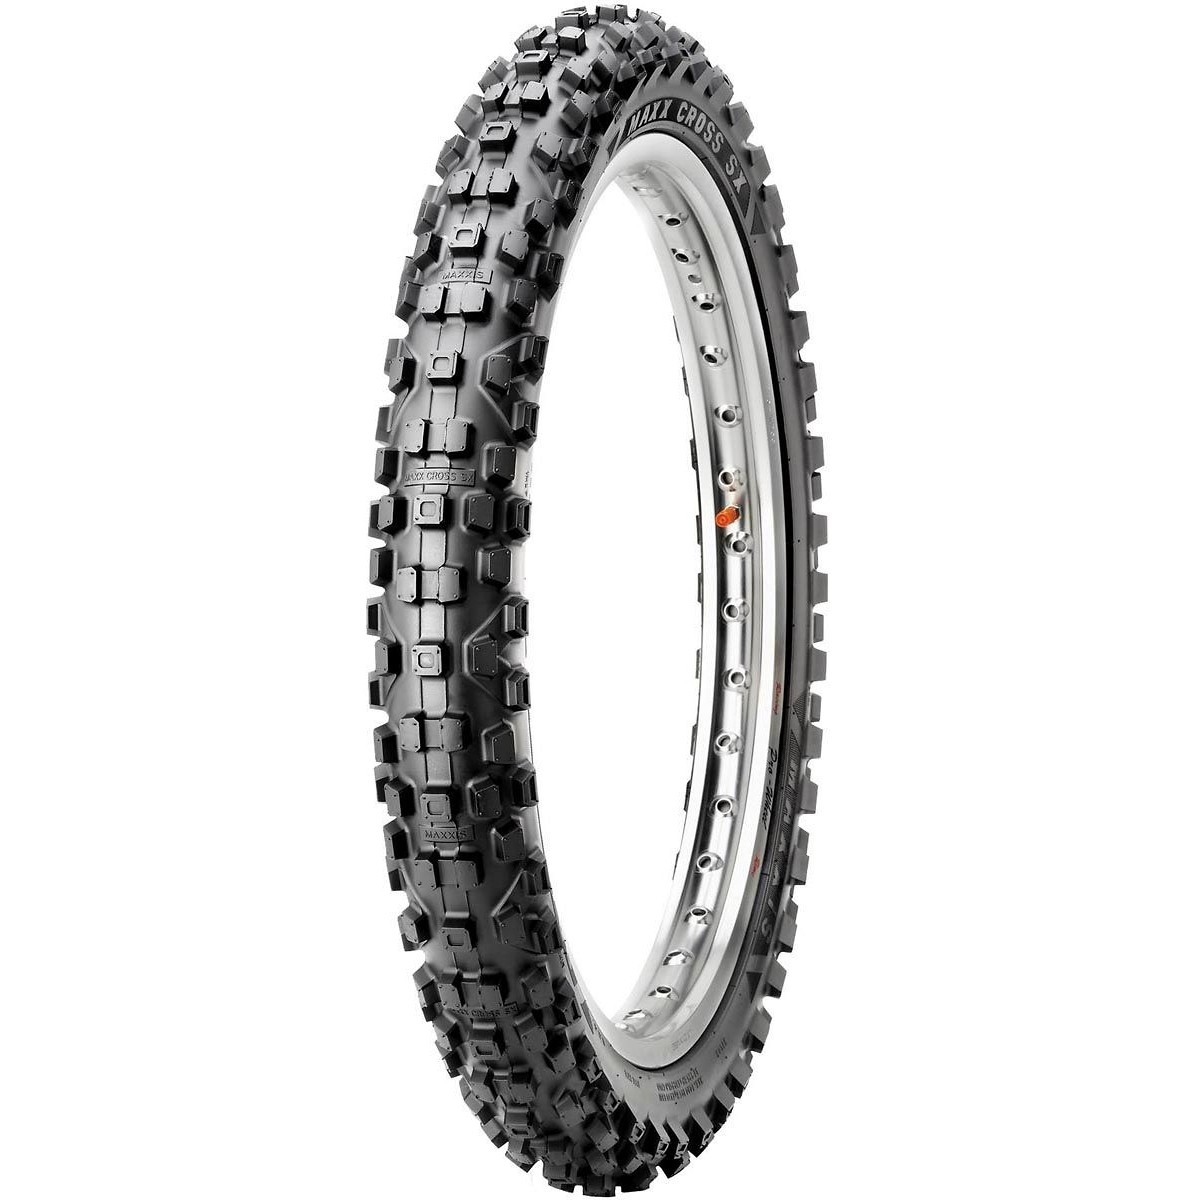 0000-maxxis-maxxcross-sx-front-tire-mcss.jpg